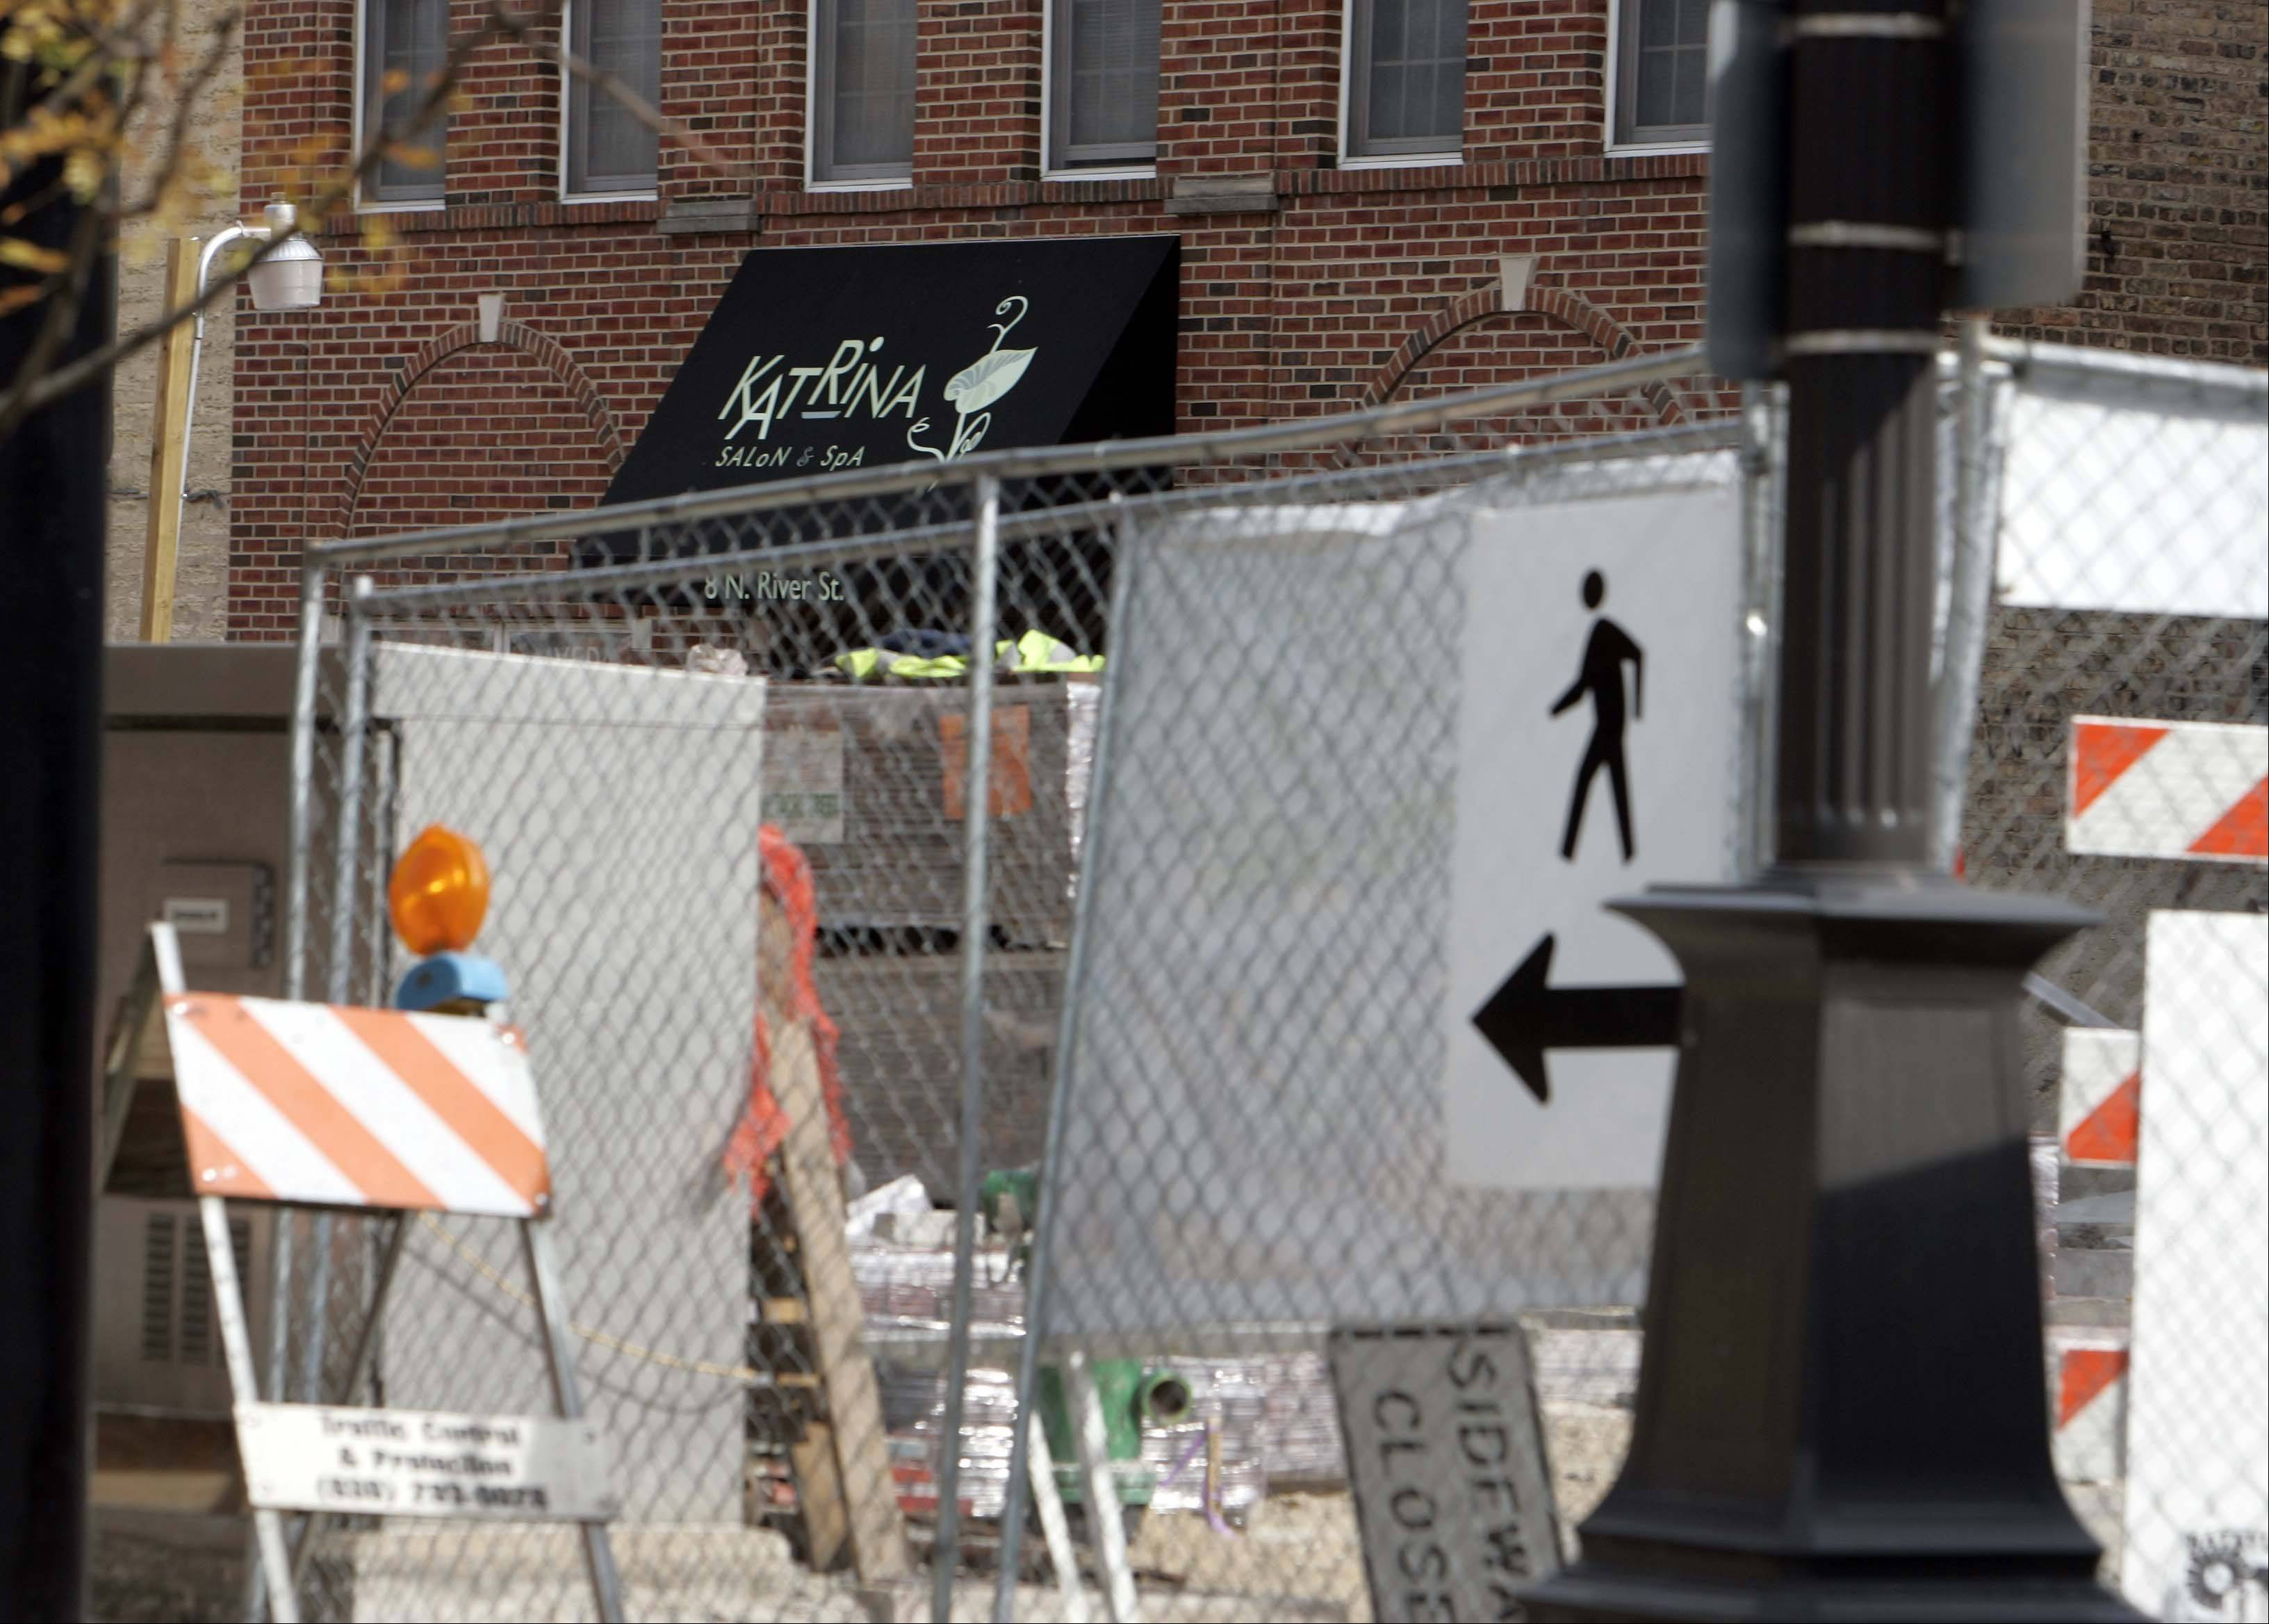 Construction of the streetscape on North River Street in downtown Batavia significantly disrupted business this summer for places such as Katrina Salon and Spa and El Taco Grande restaurant. The city is considering reimbursing some businesses for their water, sewer and electricity bills.